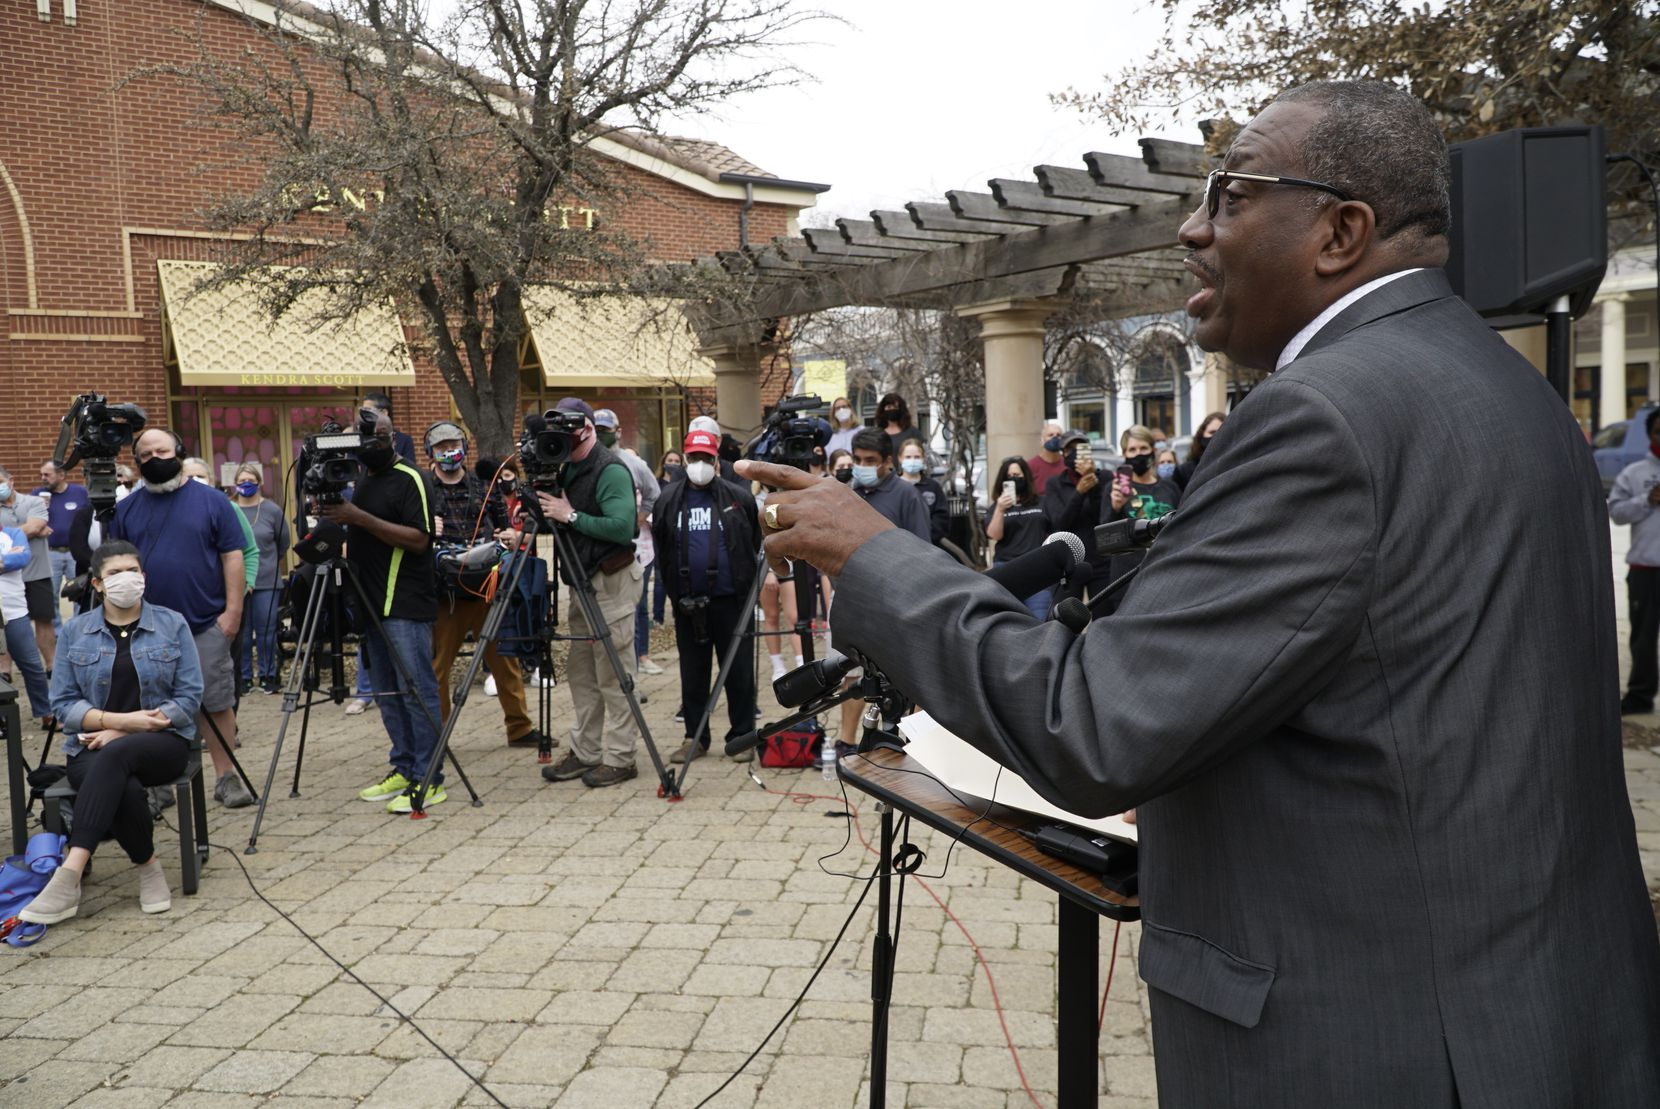 Senator Royce West speaks during a press conference about diversity in the school district in Southlake, Texas on Friday February 12, 2021.